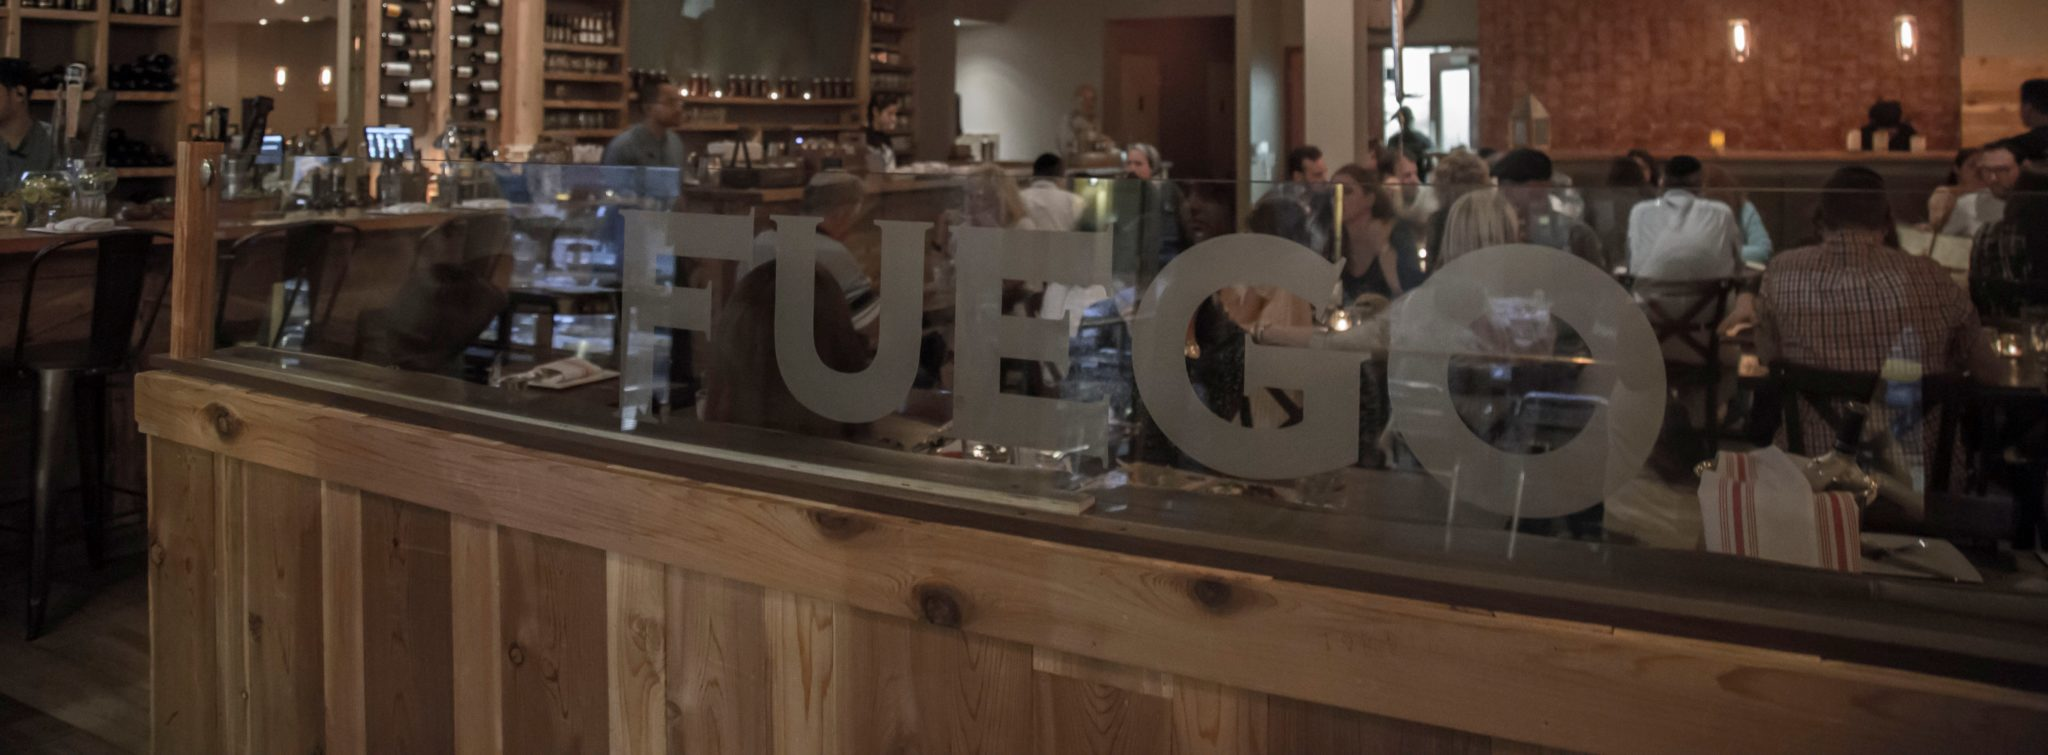 Fuego By Mana Makes Awesome Kosher Food